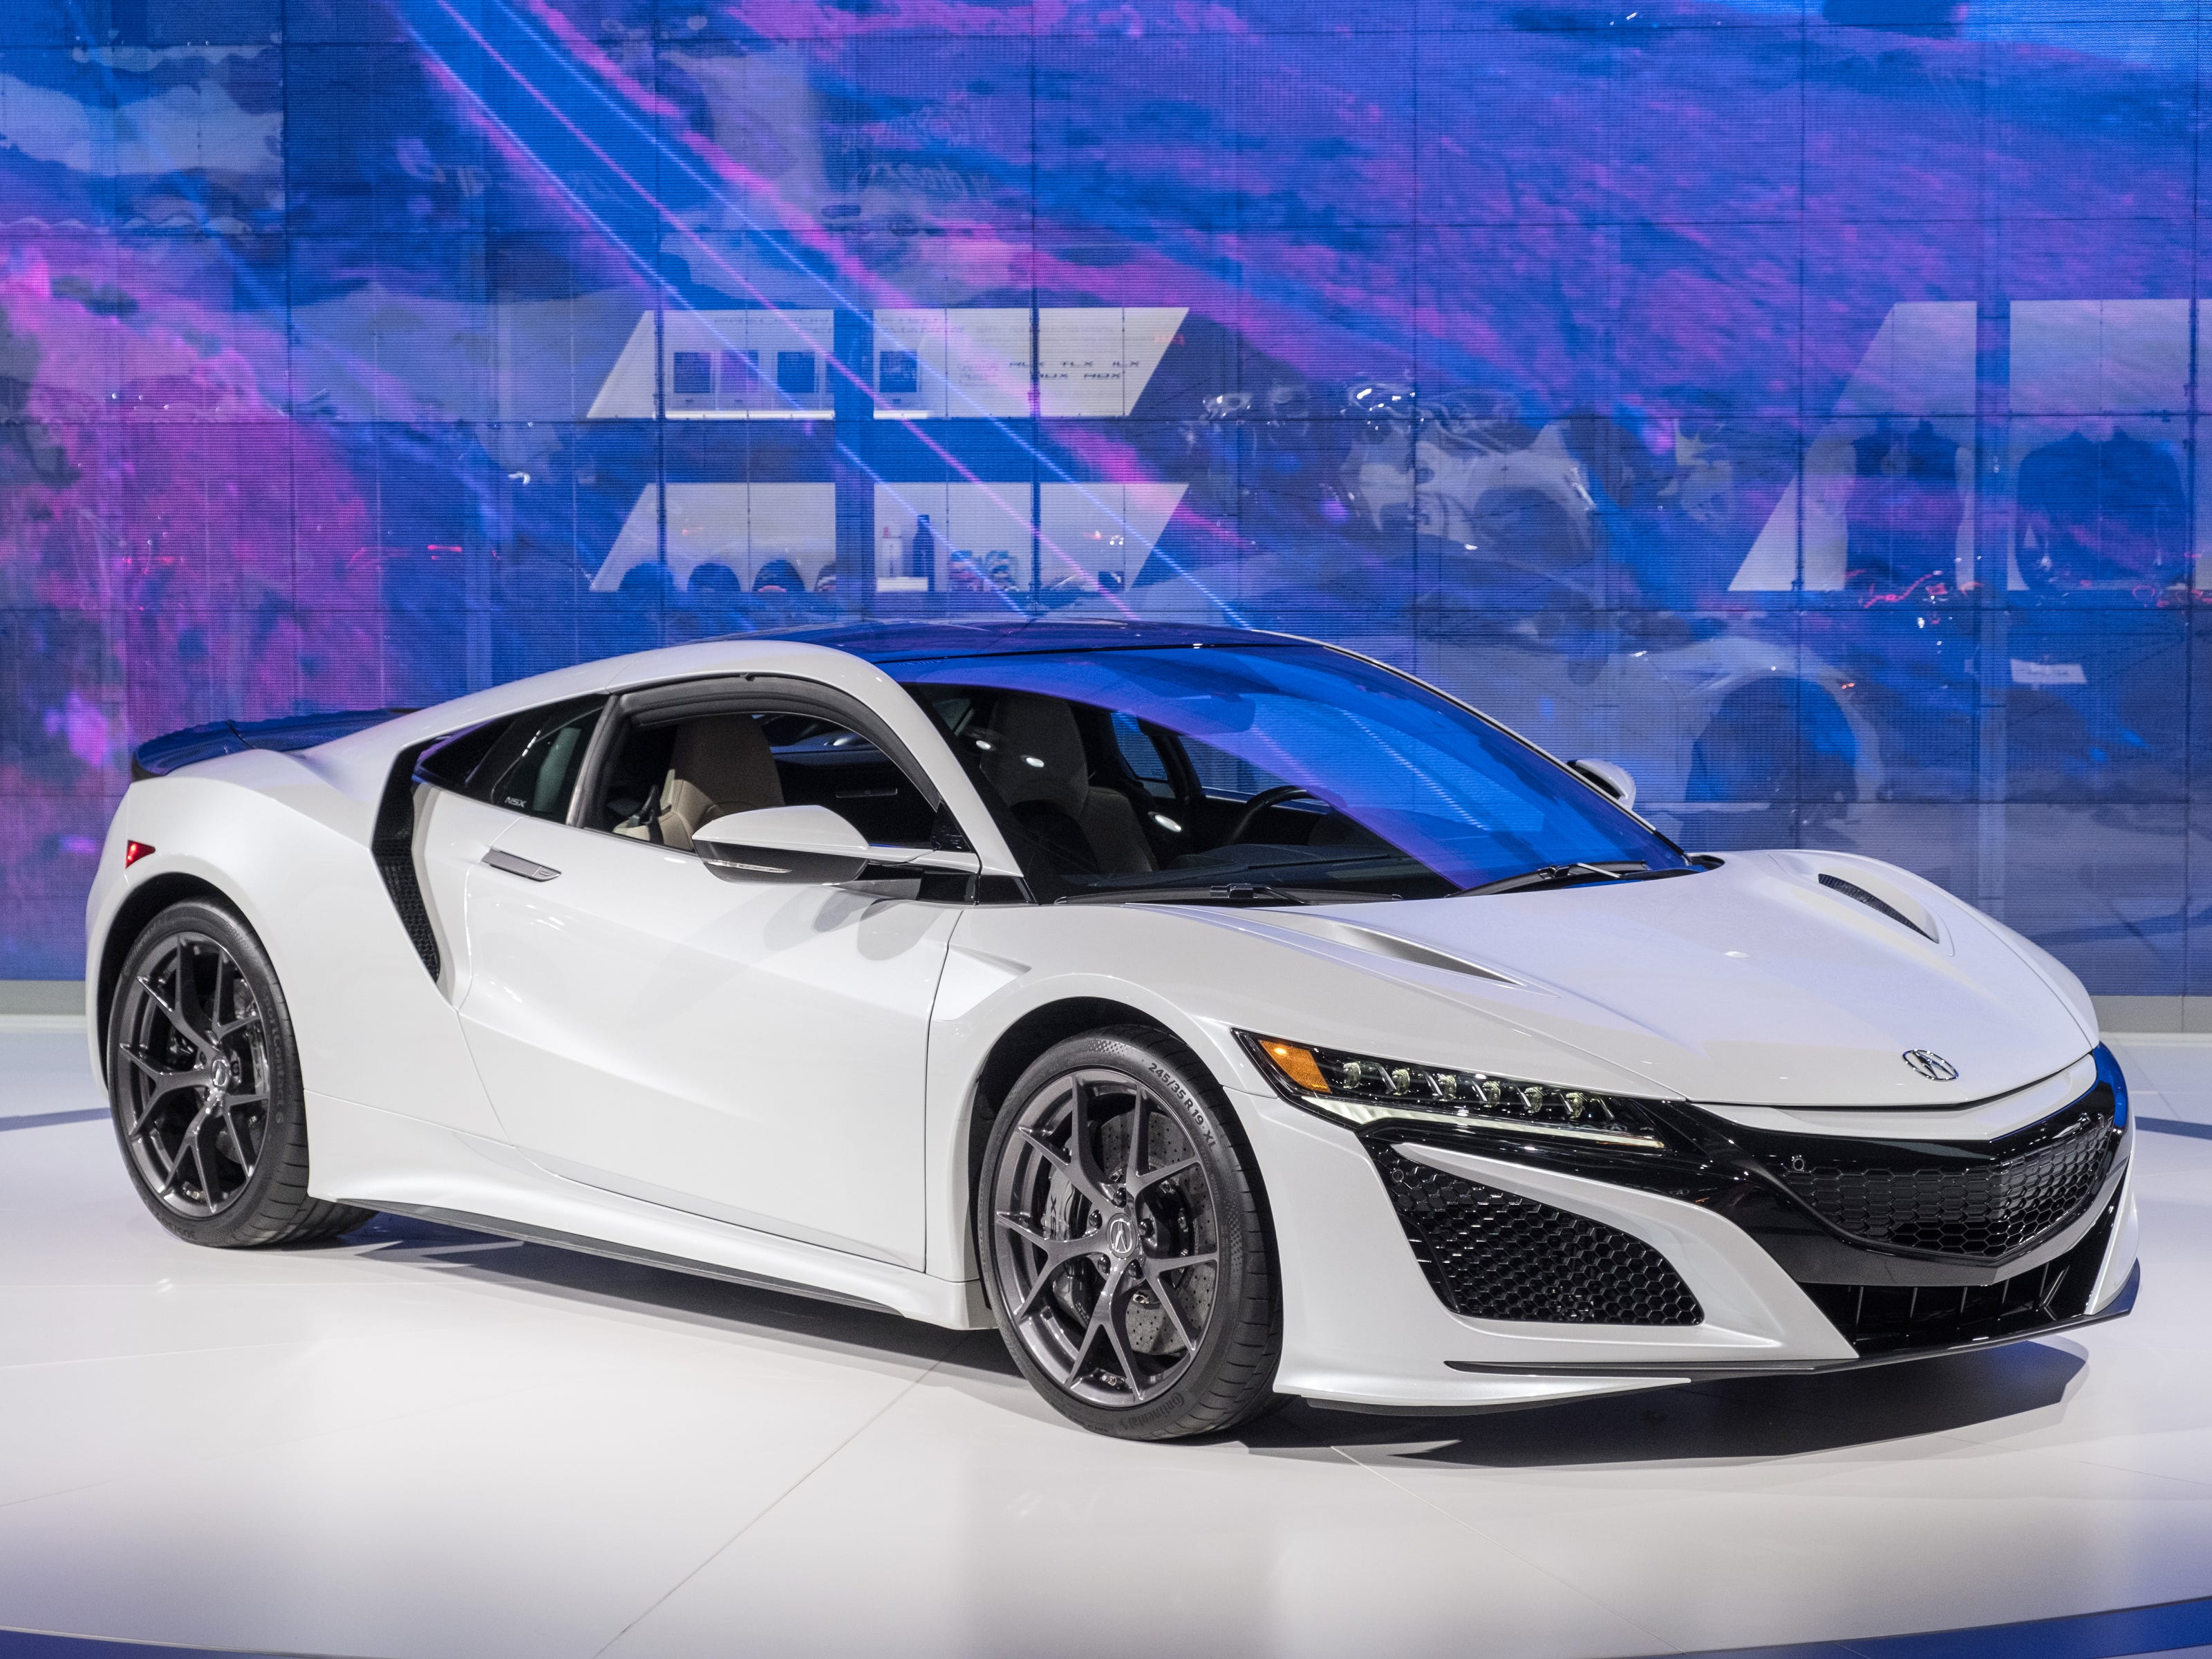 A 2019 Acura NSX sits on the stage during the 2019 North American International Auto Show held at Cobo Center in downtown Detroit on Tuesday, Jan. 15, 2019.  (Via OlyDrop)